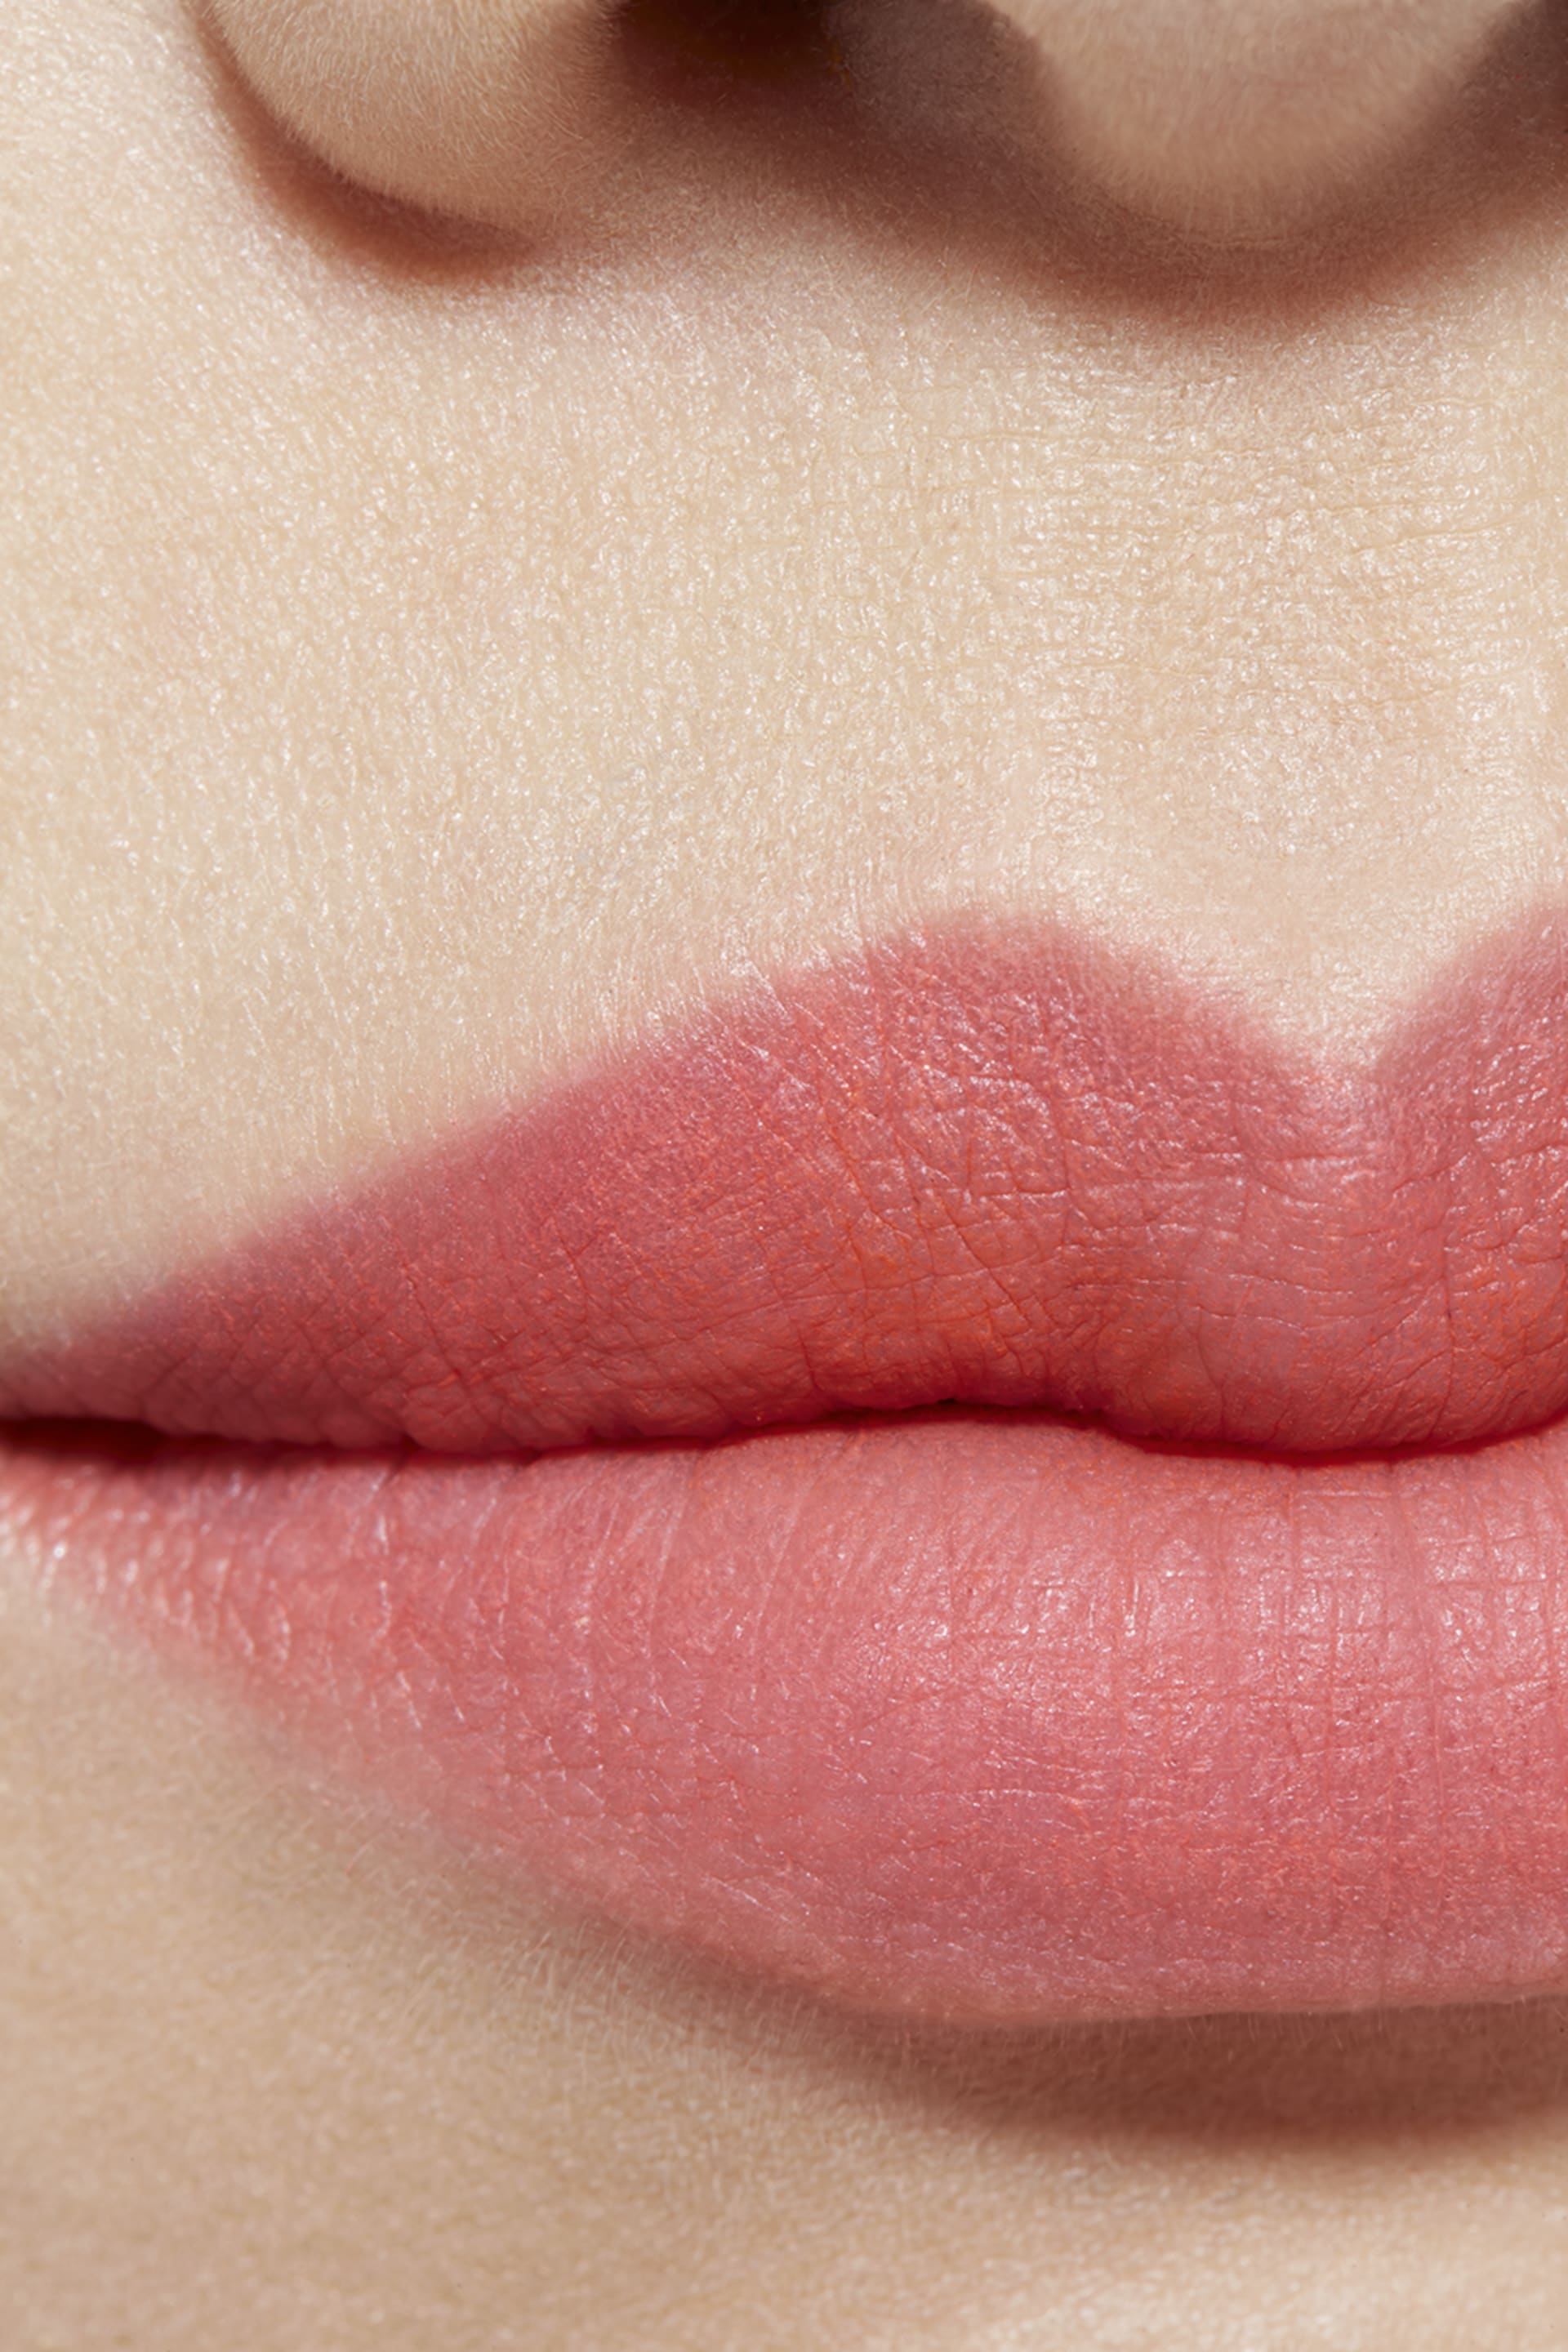 Application makeup visual 1 - ROUGE COCO LIP BLUSH 414 - TENDER ROSE